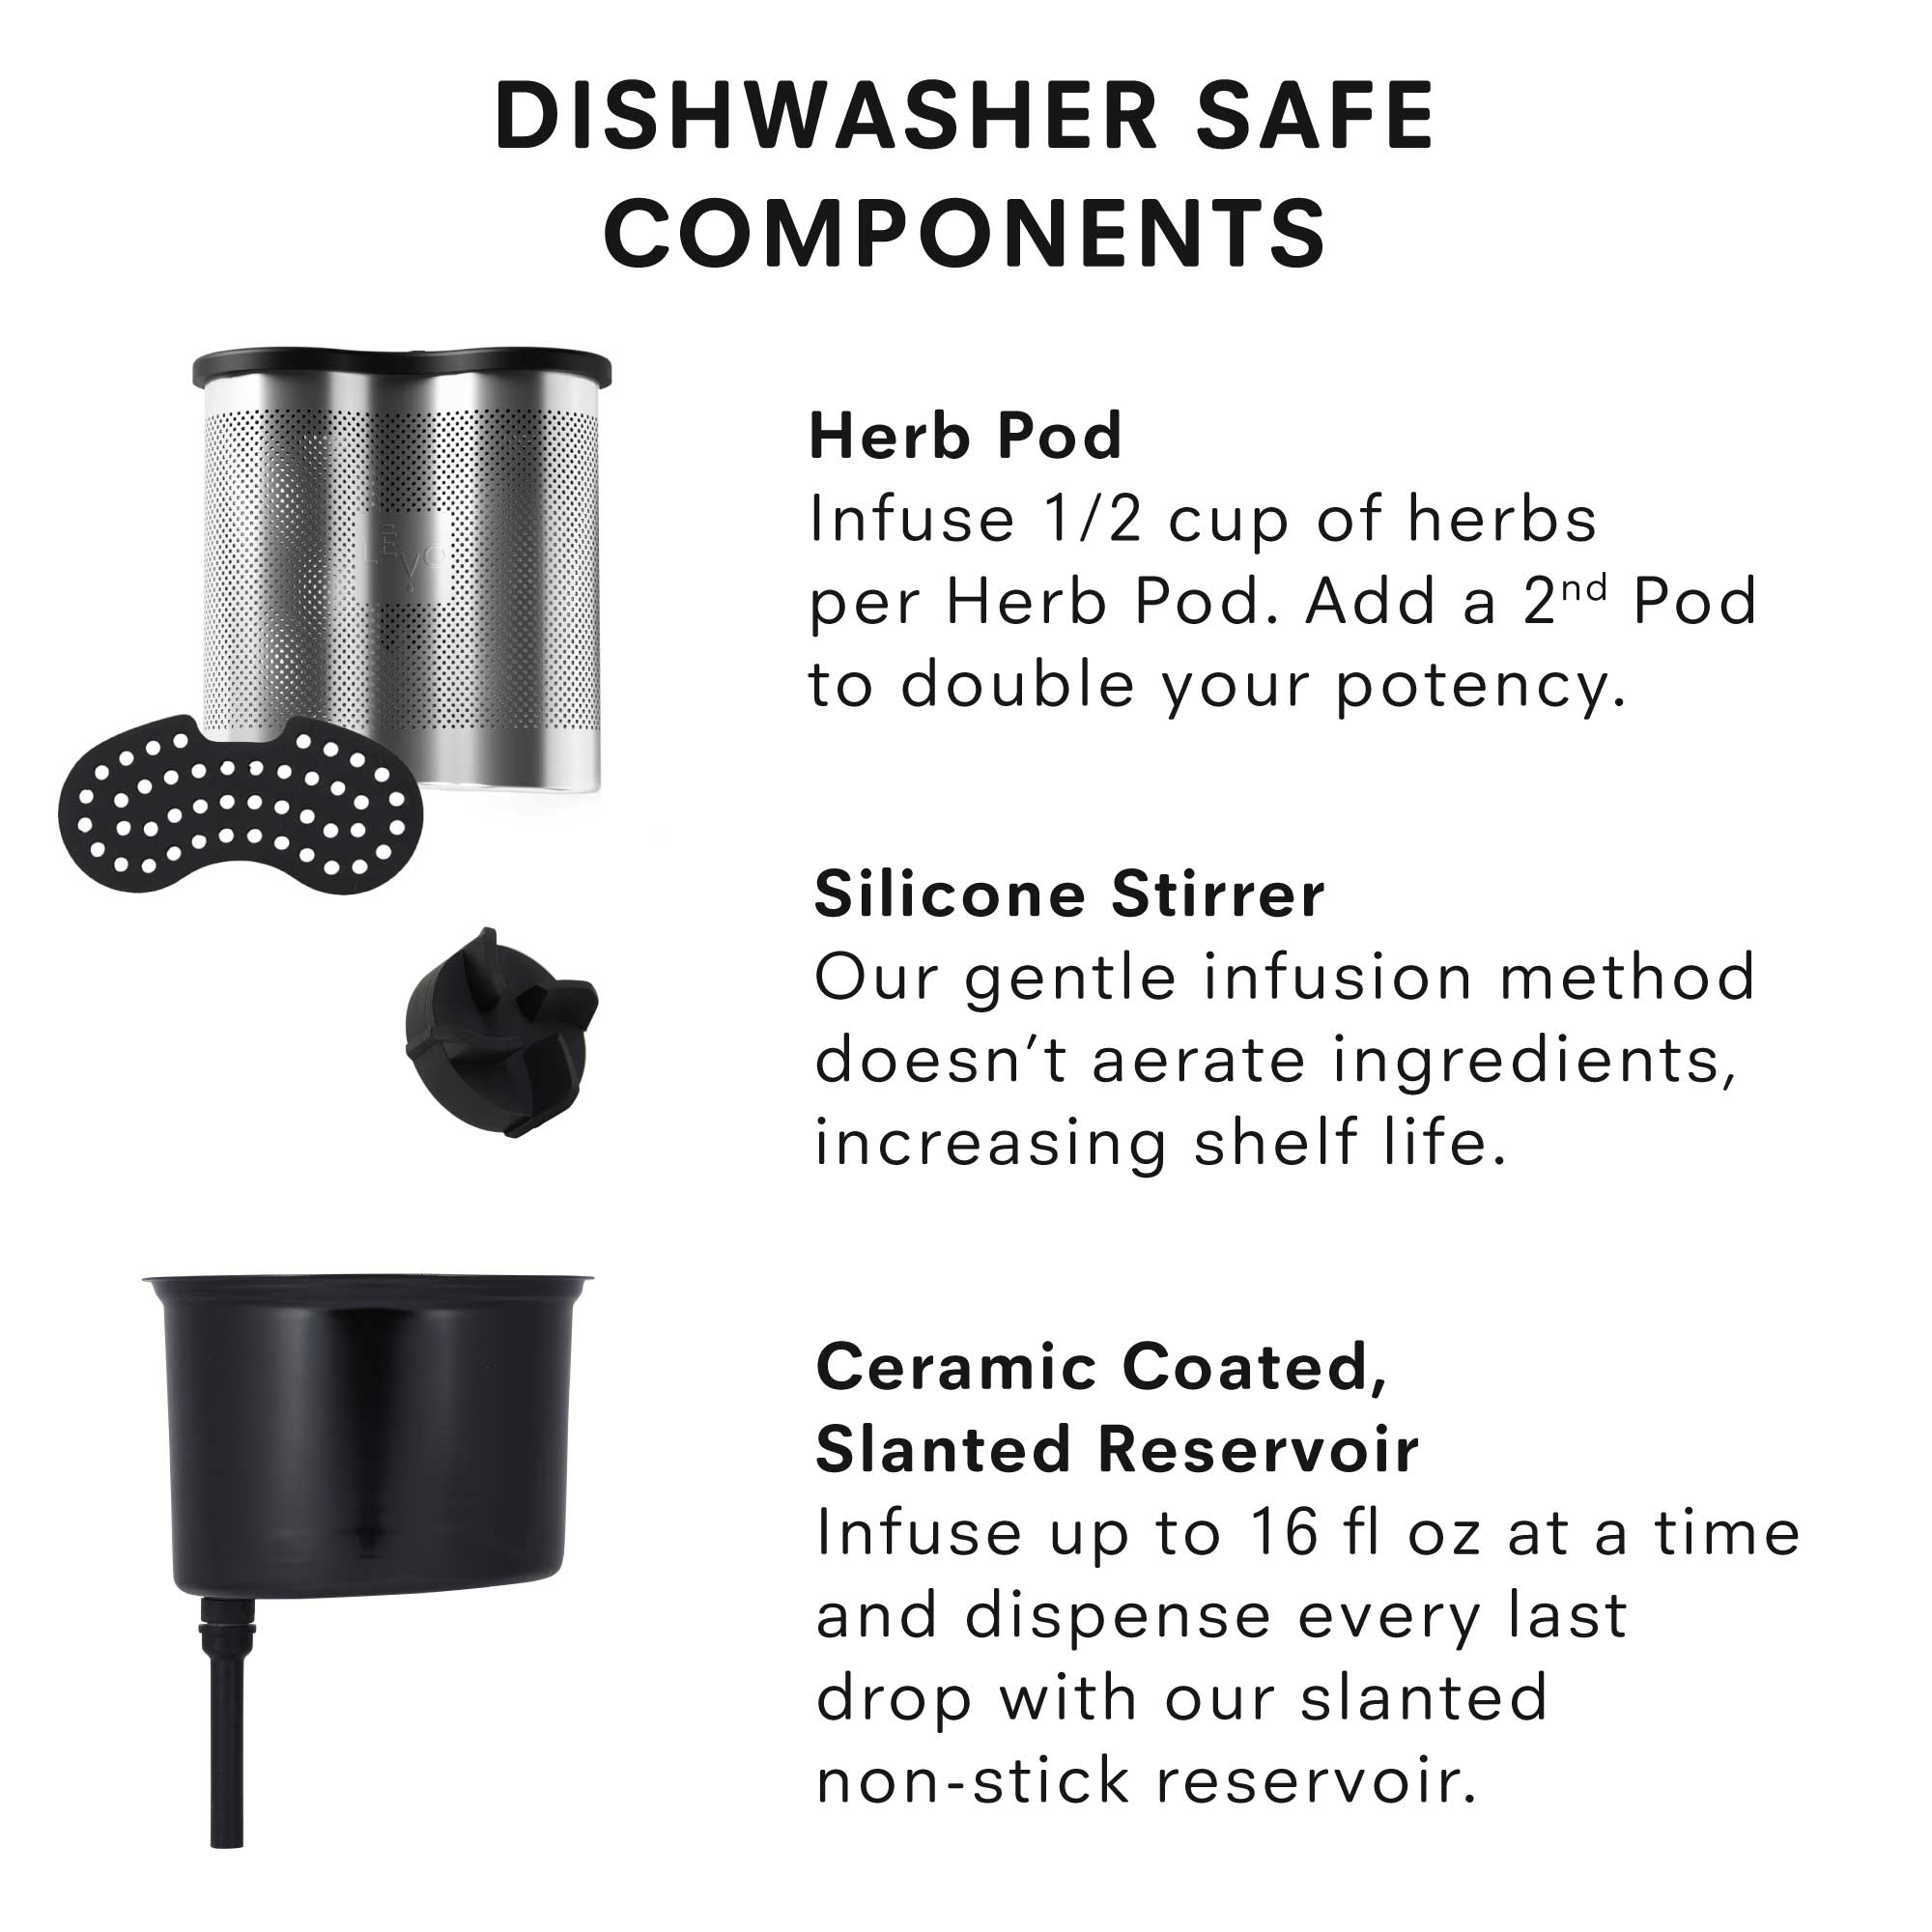 Dishwasher safe components! The LEVO II herb pod and lid, silicone stirrer, and ceramic coated reservoir can all go in the top rack of your dishwasher, making cleanup super simple